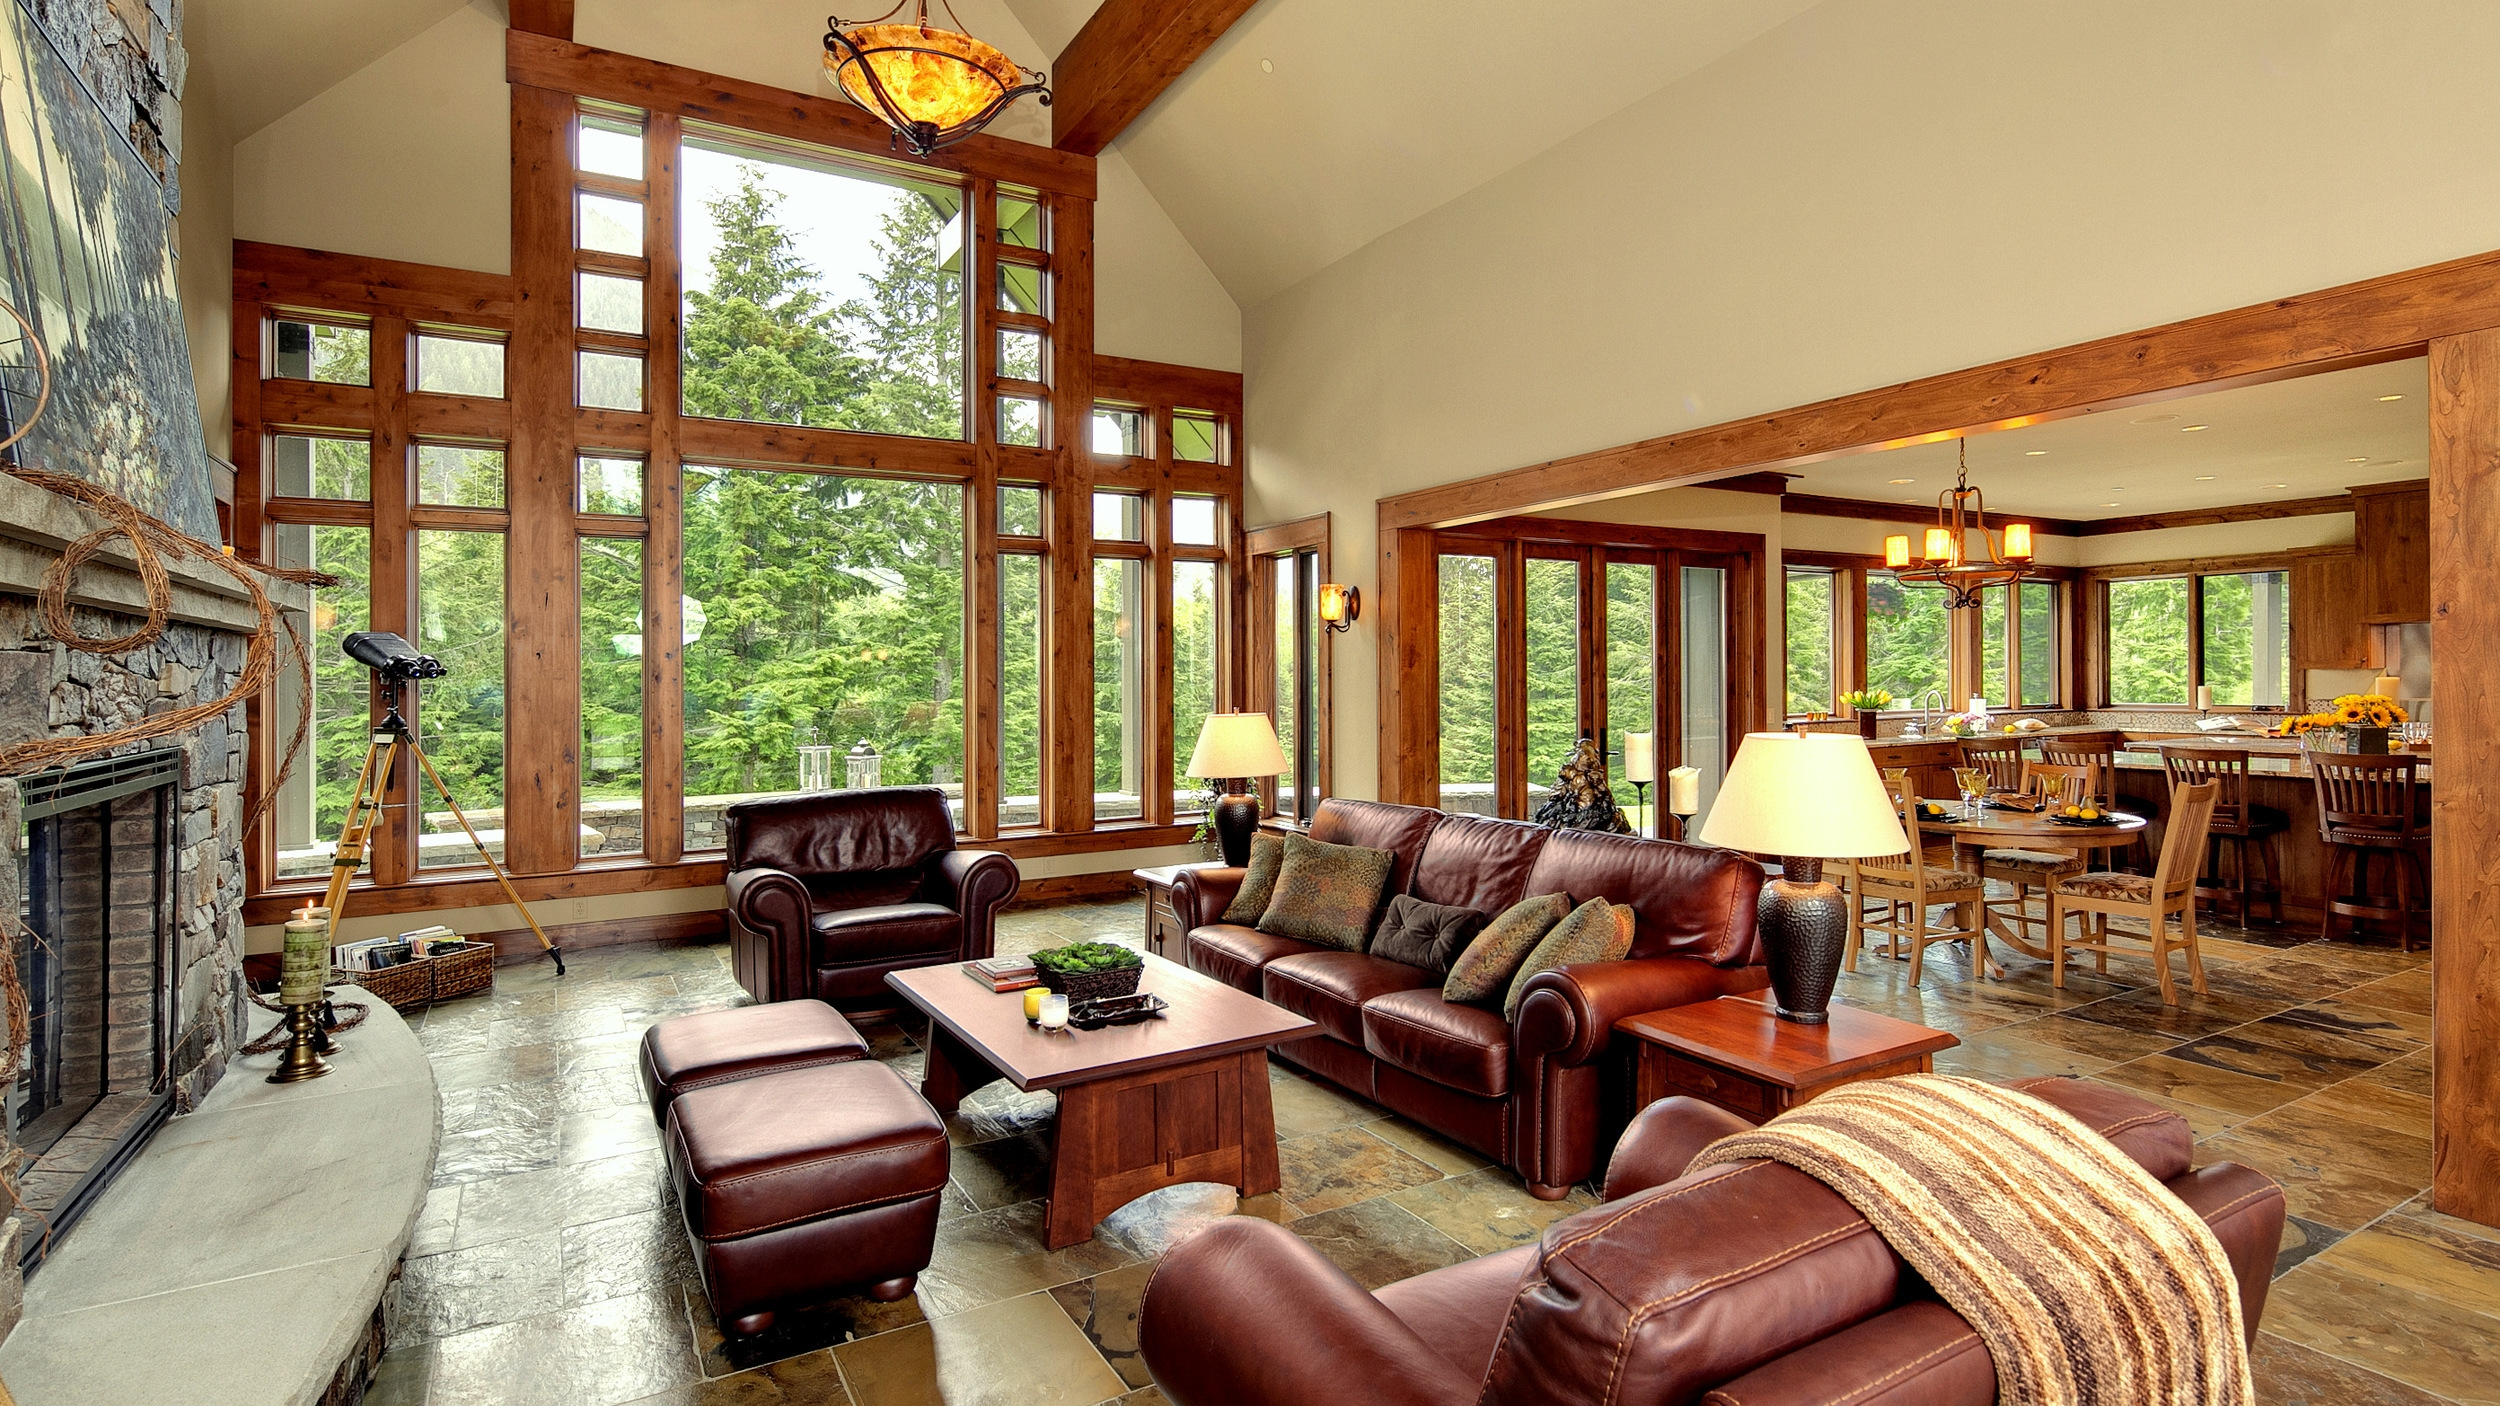 Lodge Style with a Great View   timber beams, window walls, and slate floors